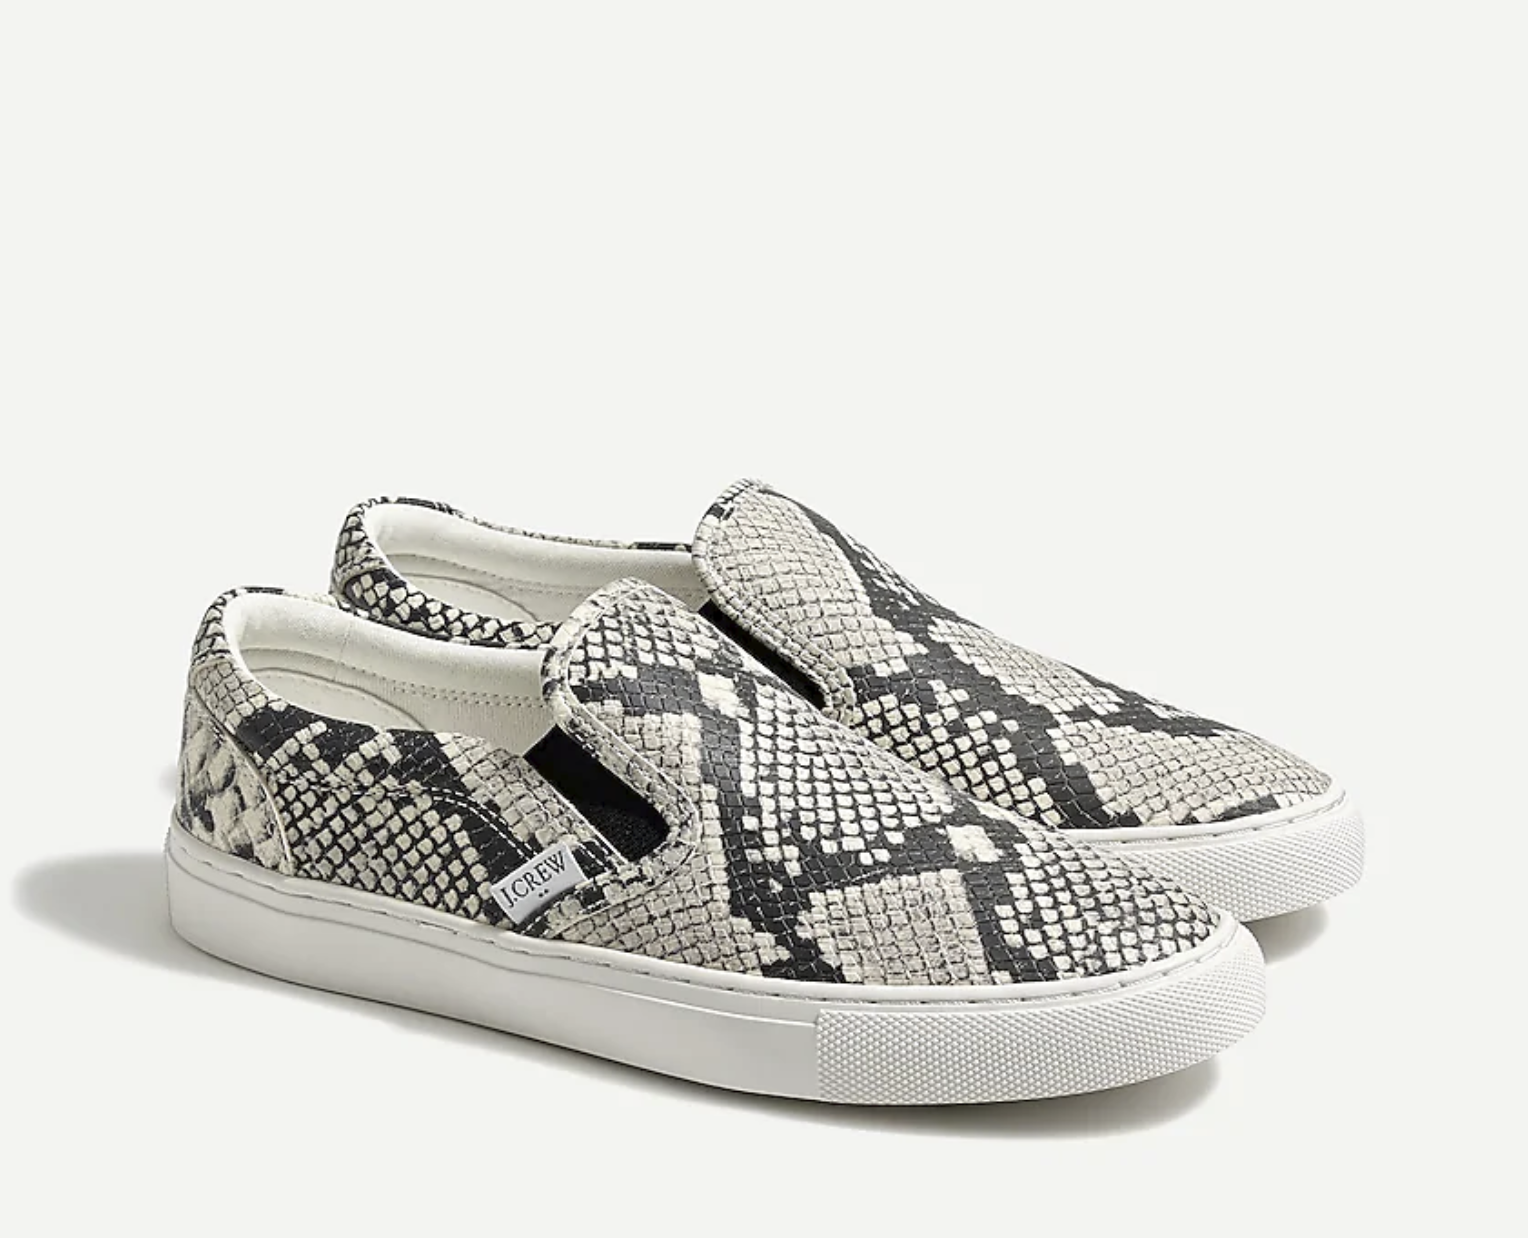 slip-on sneakers with a white and black snakeskin print and white sole